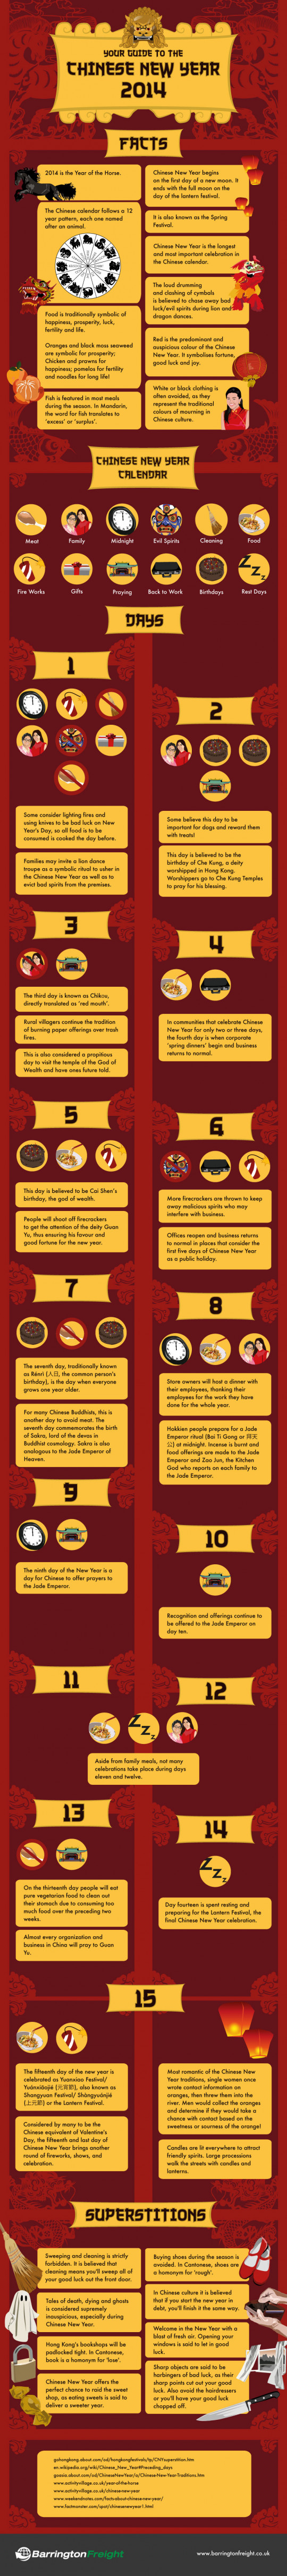 Your Guide To The Chinese New Year 2014